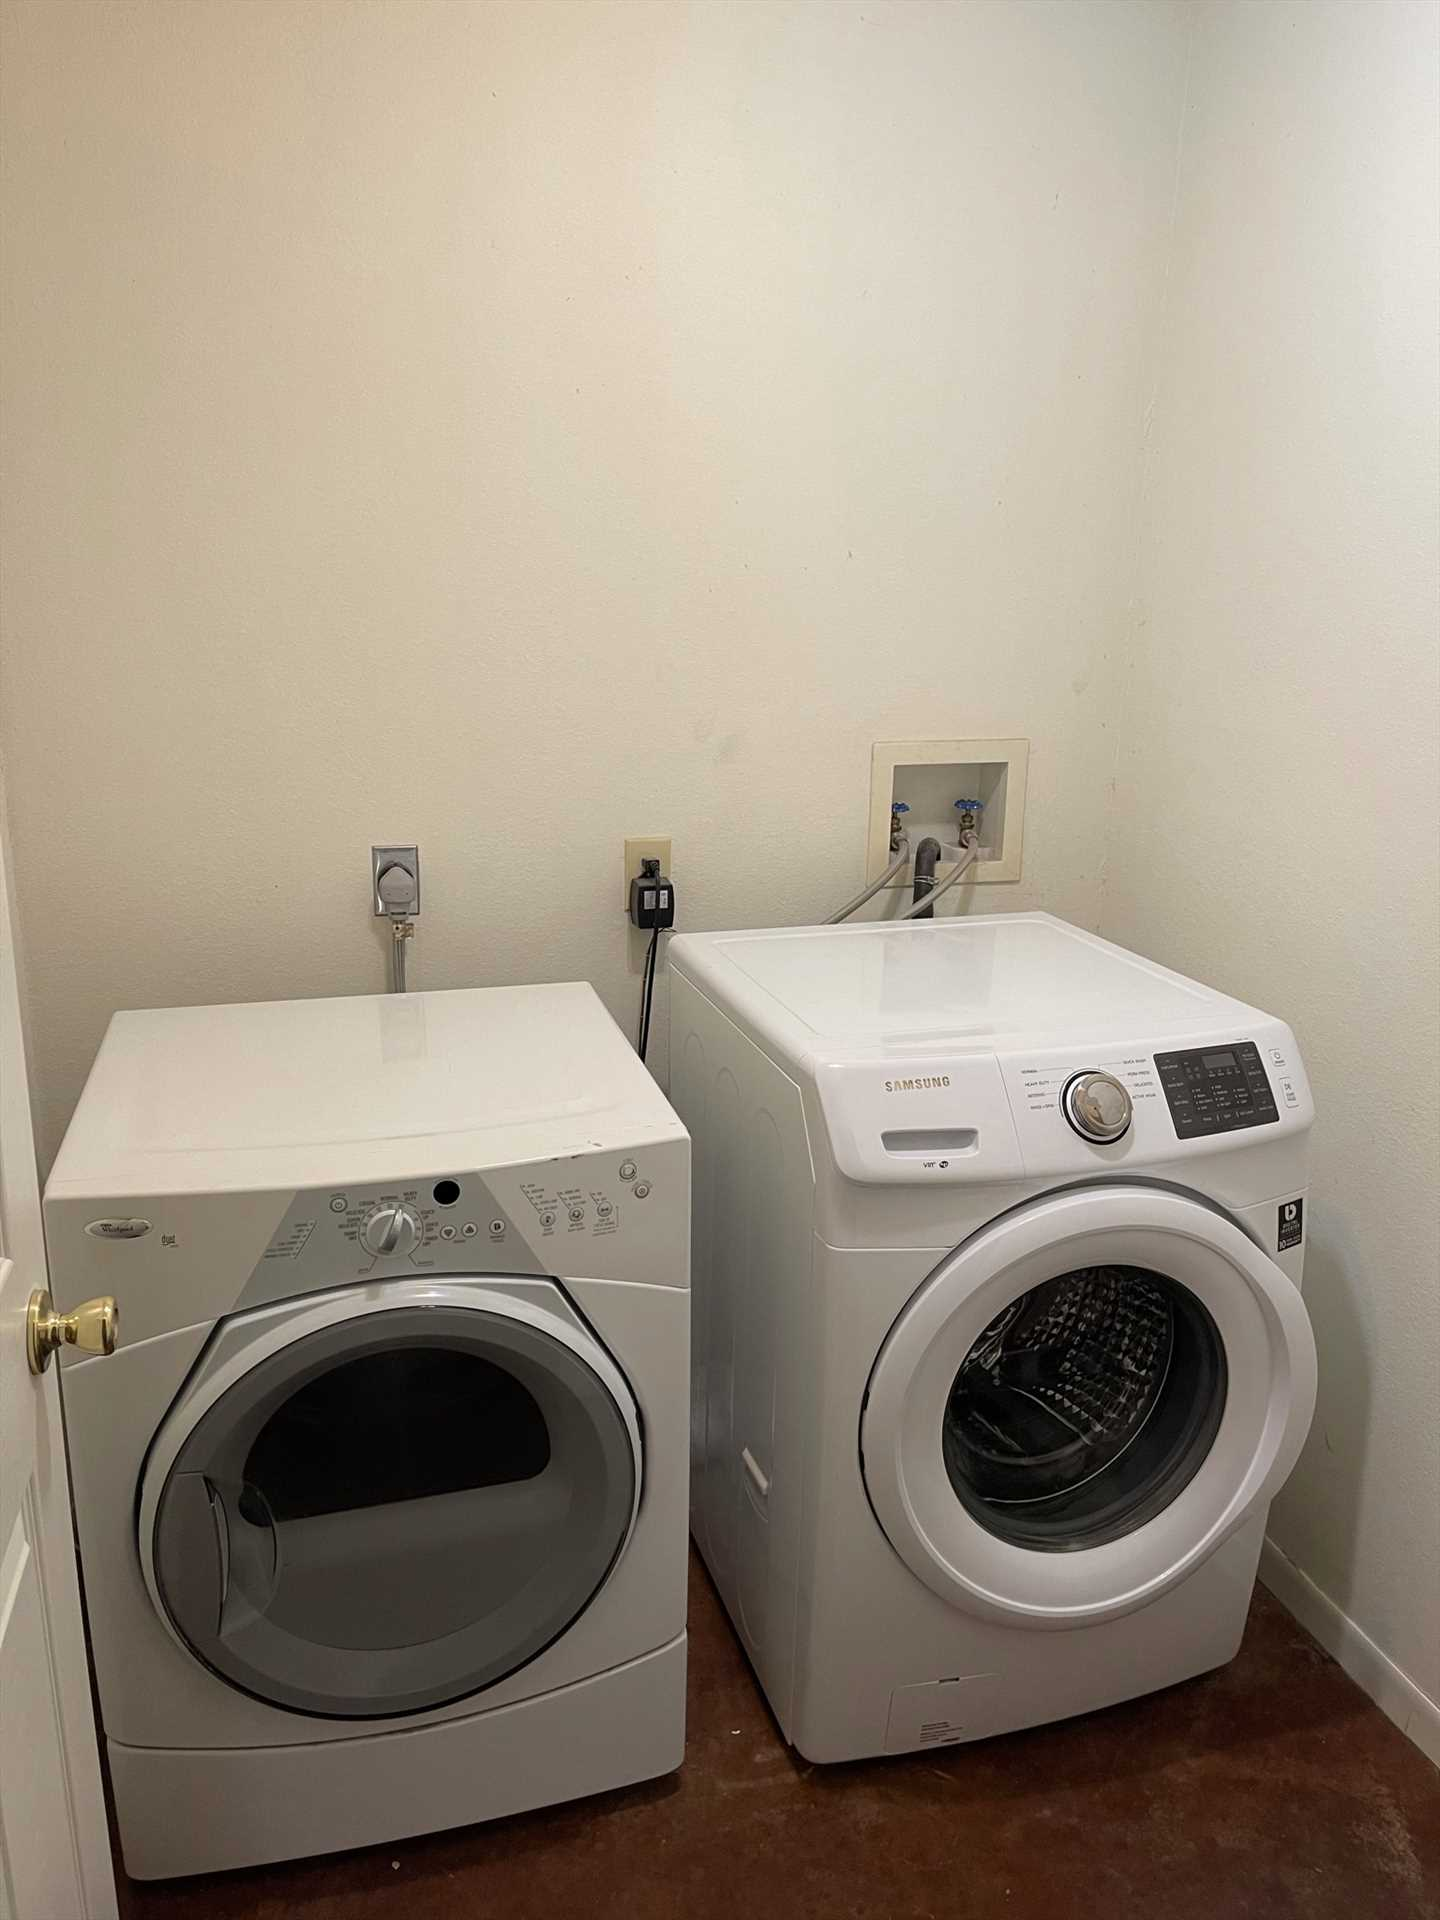 There's also a washer and dryer on-site!